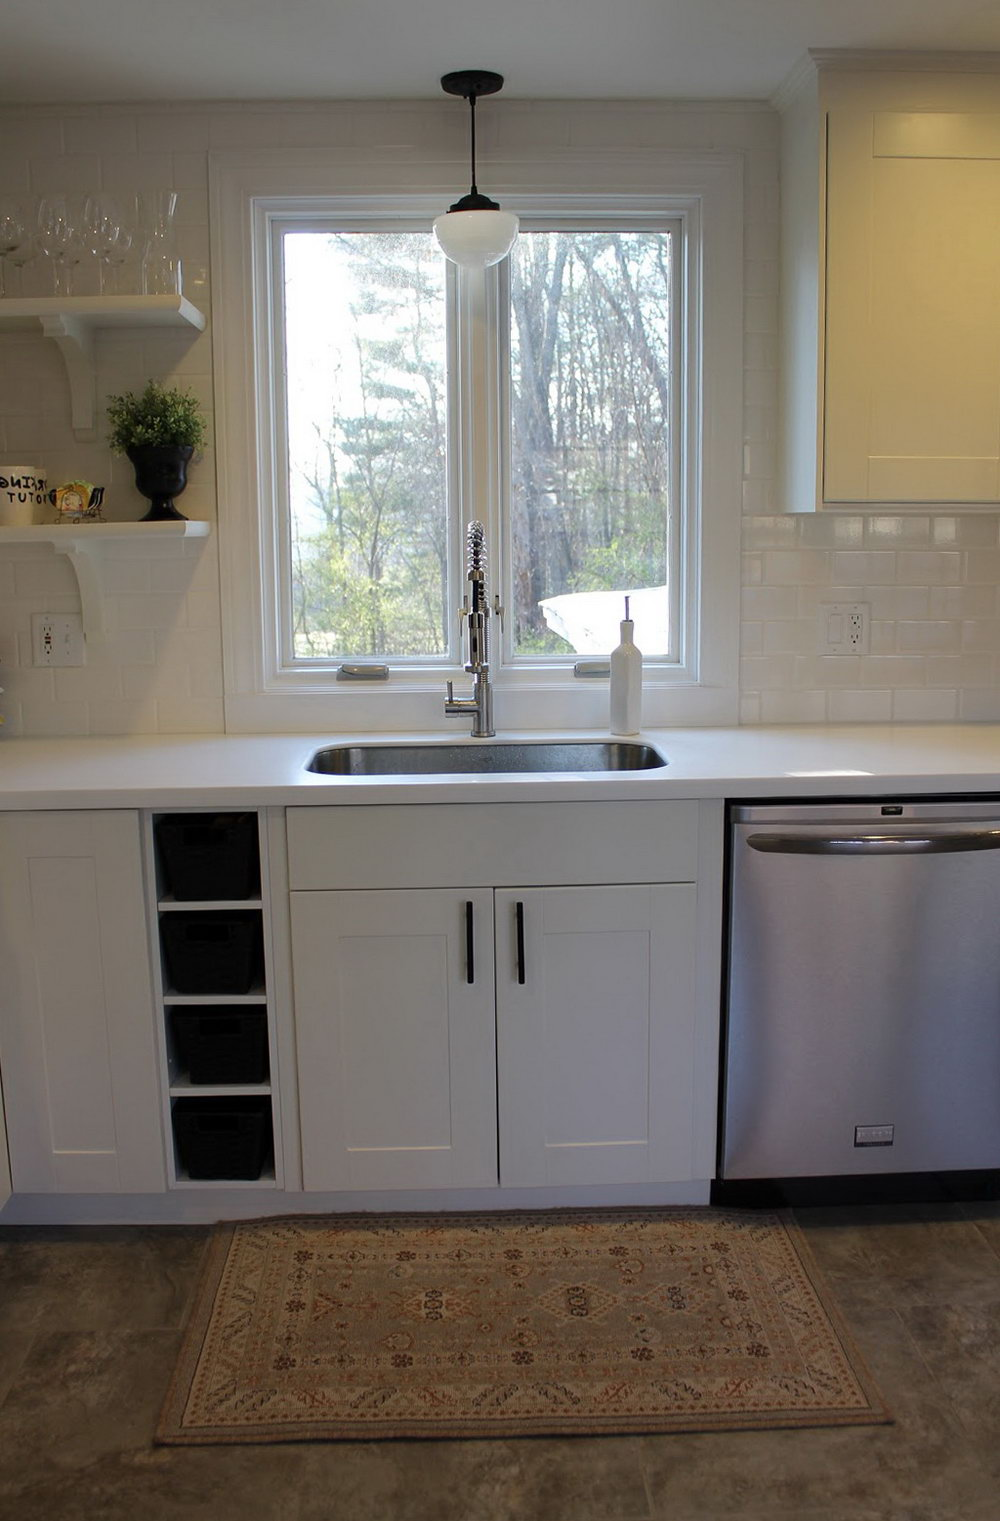 Ikea Kitchen Sink Cabinet Installation